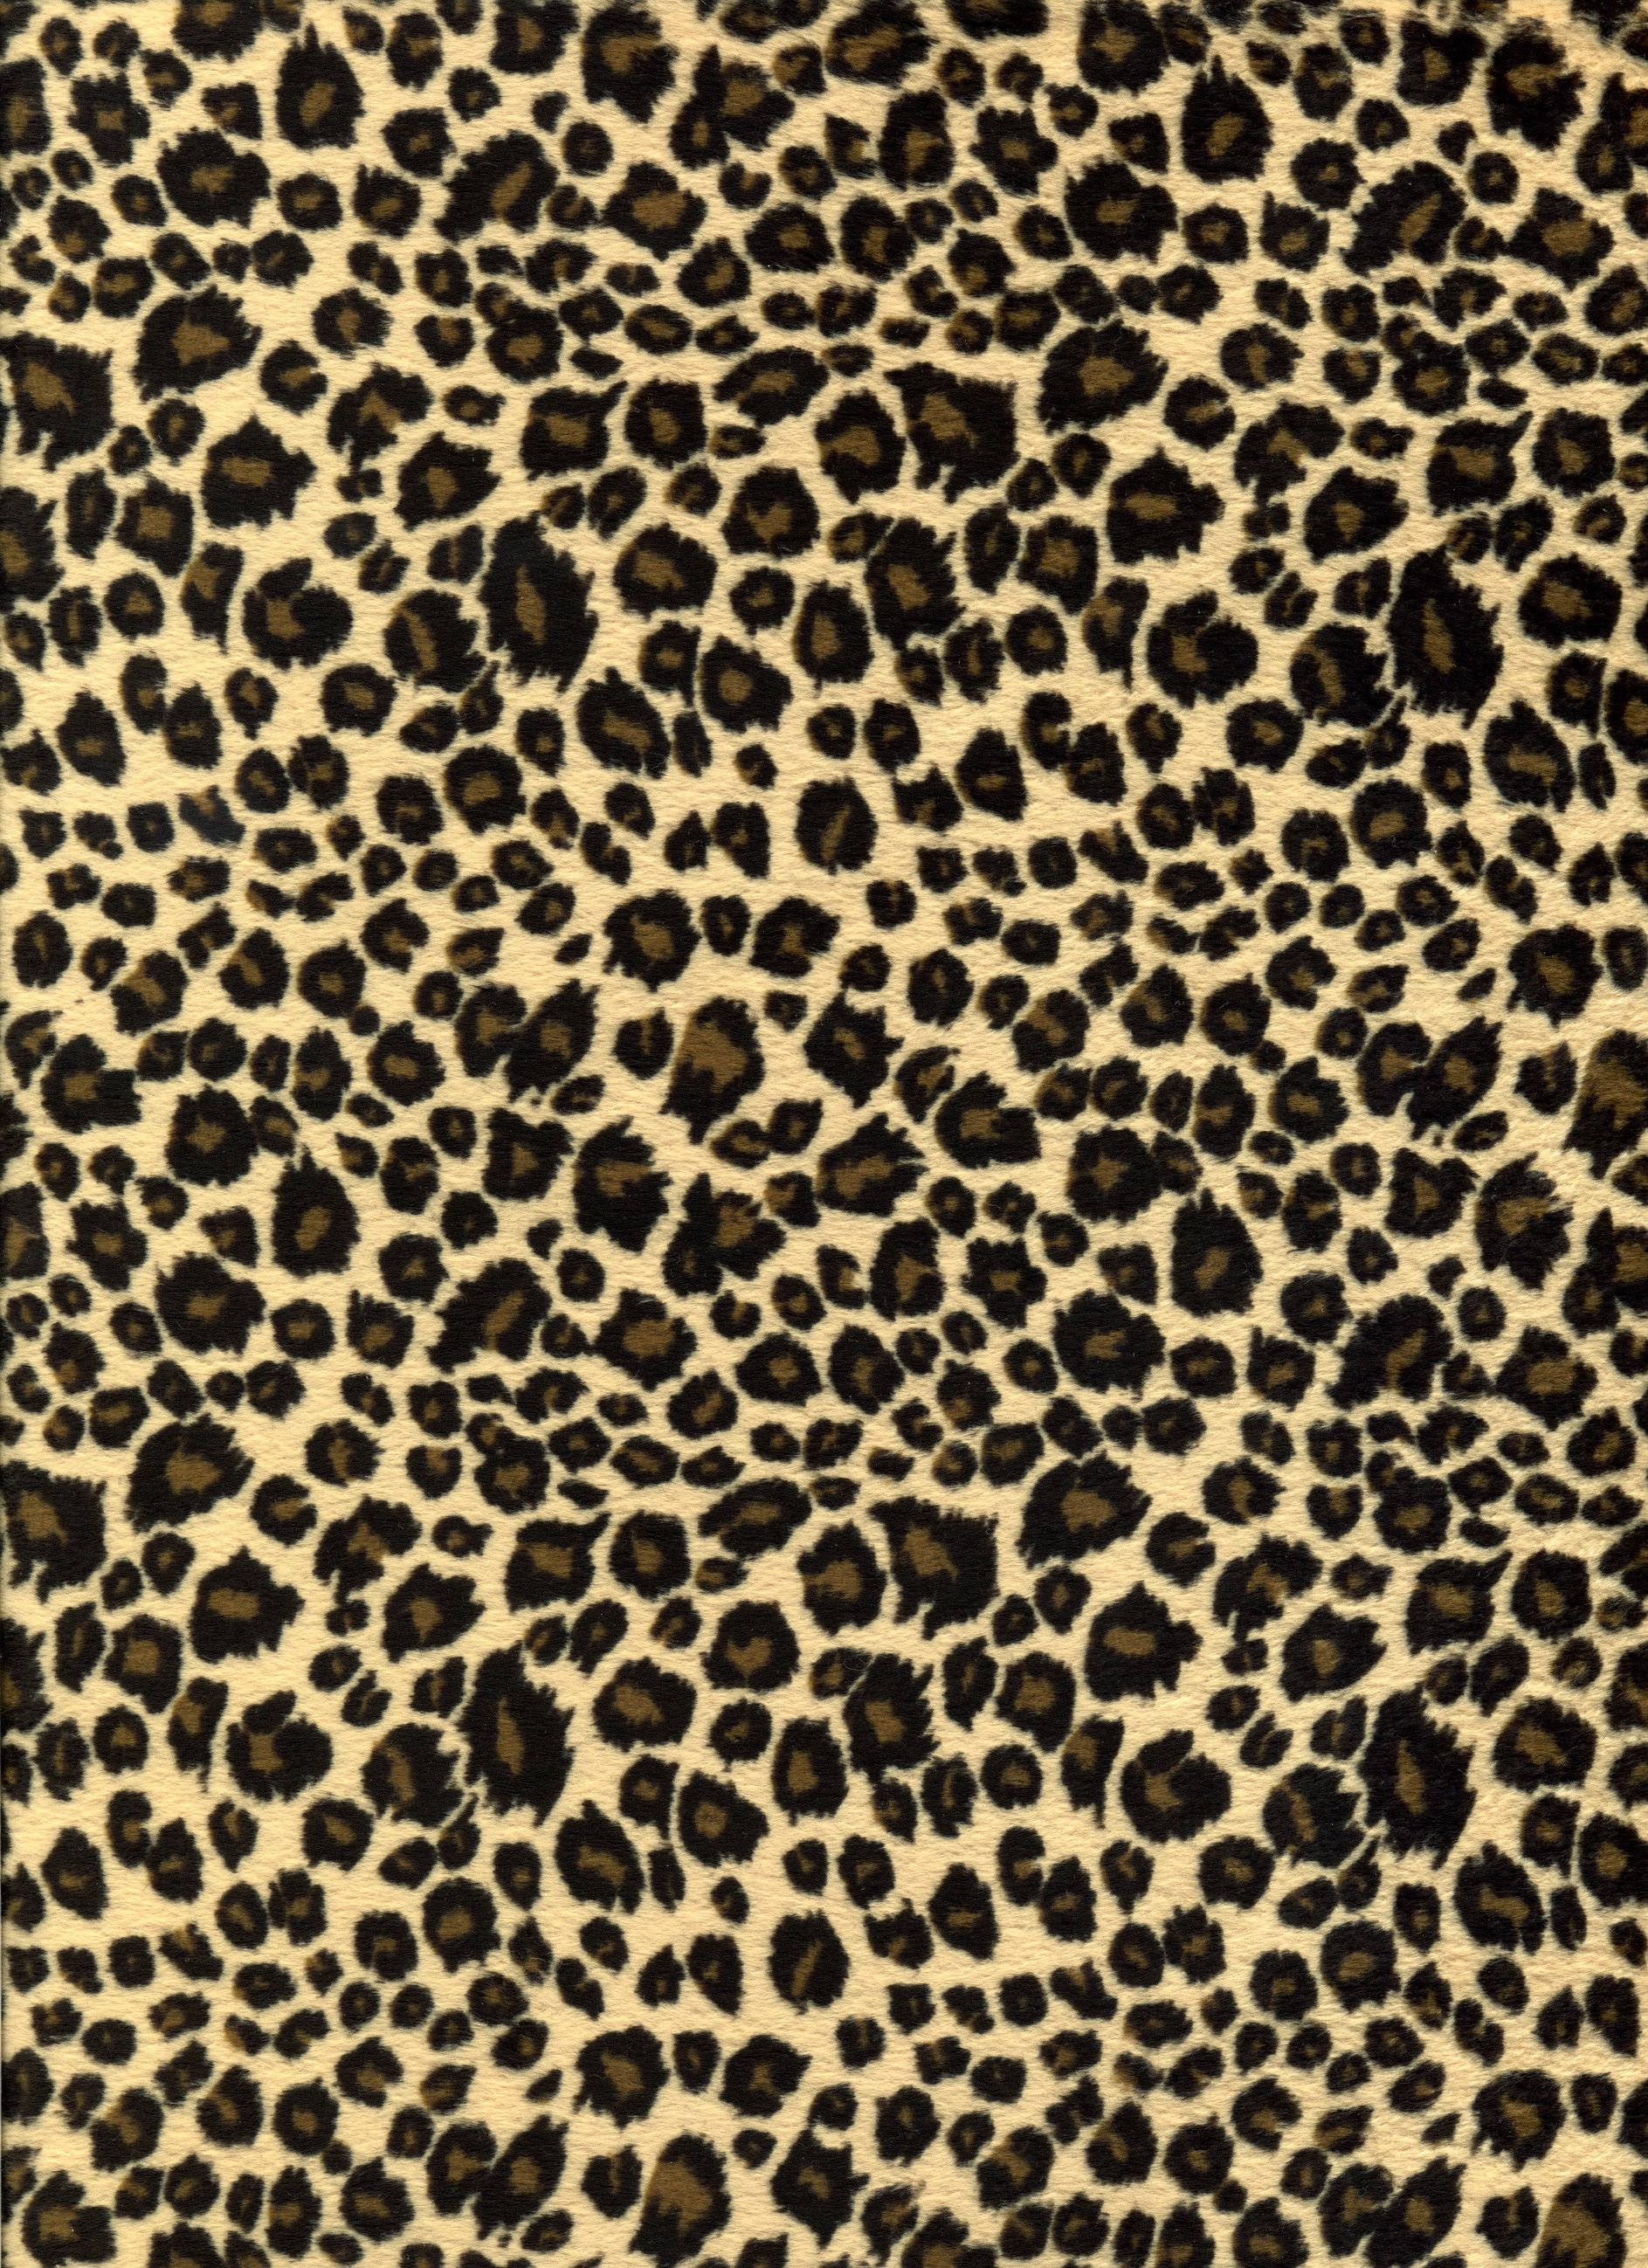 Loving The Leopard Print Patterns